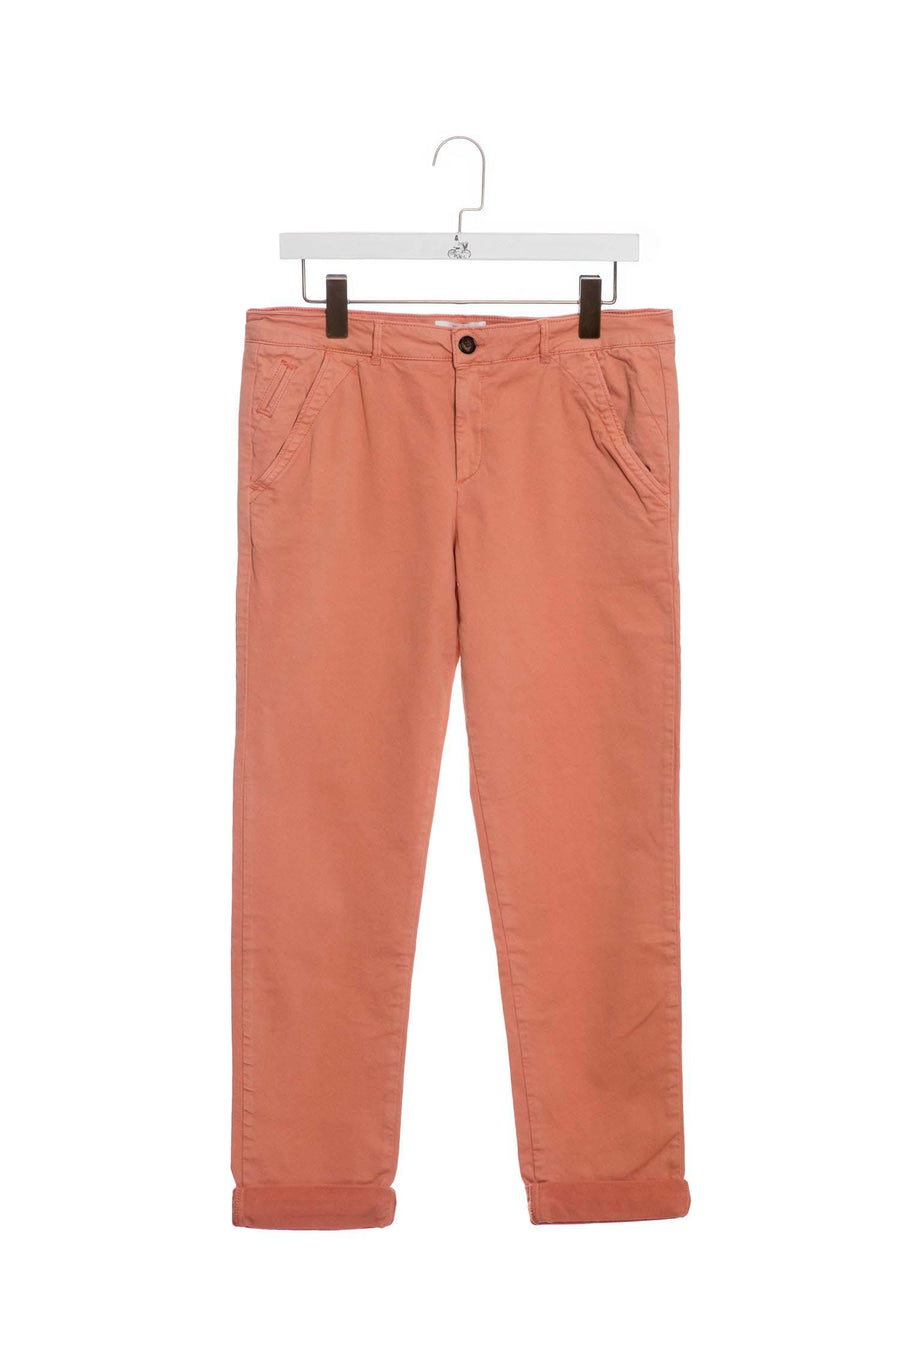 Straight Legged Chino Dirty-Pink